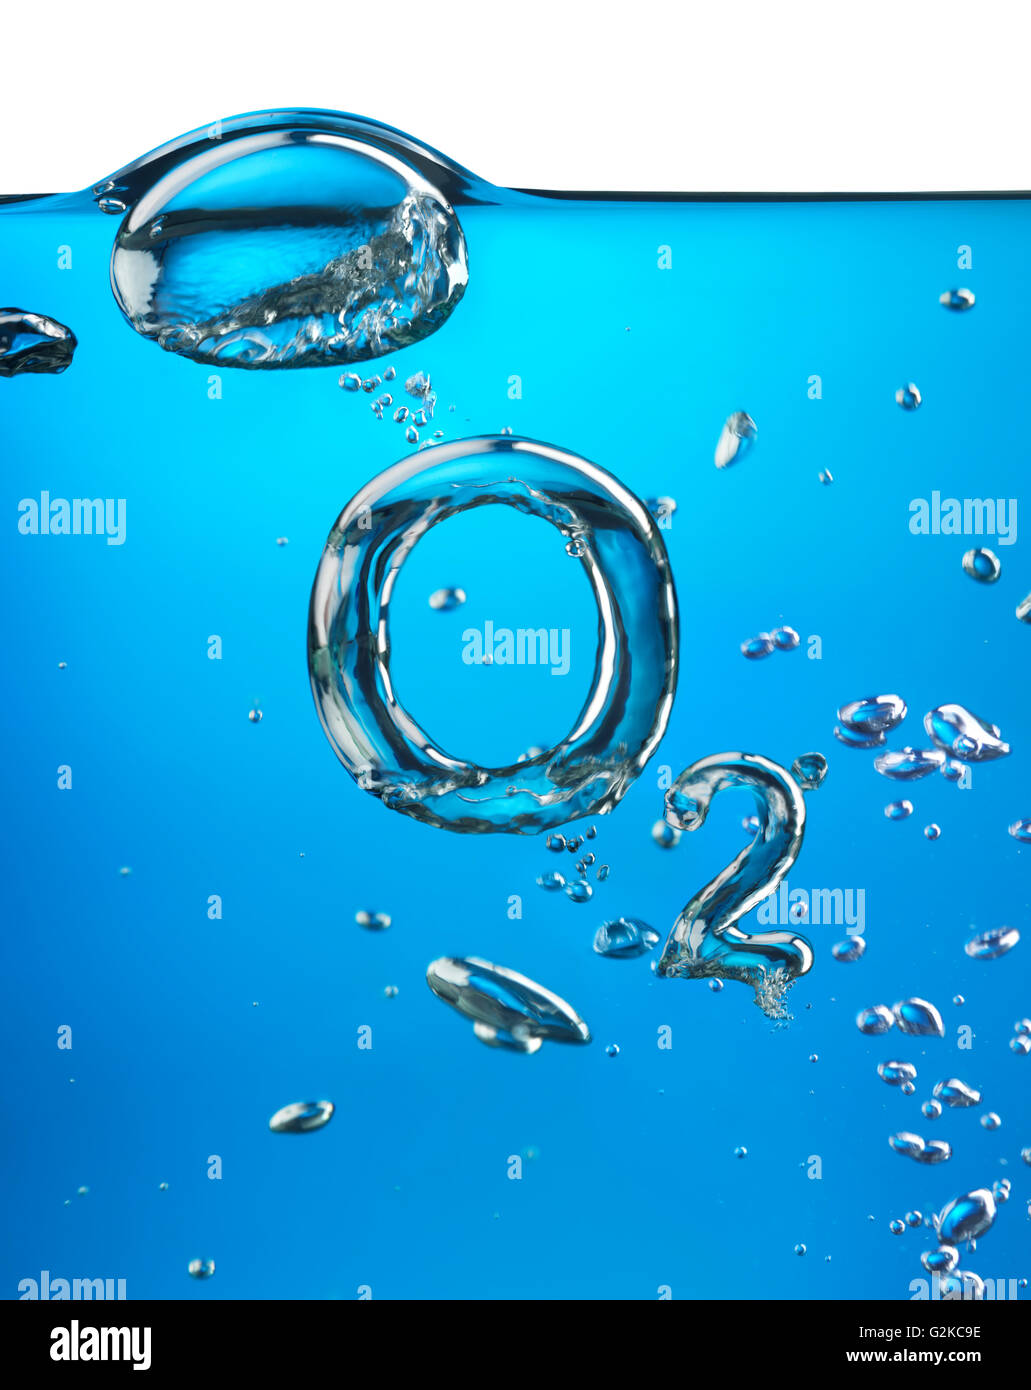 Formula of oxygen, O2, made of air bubbles in water - Stock Image